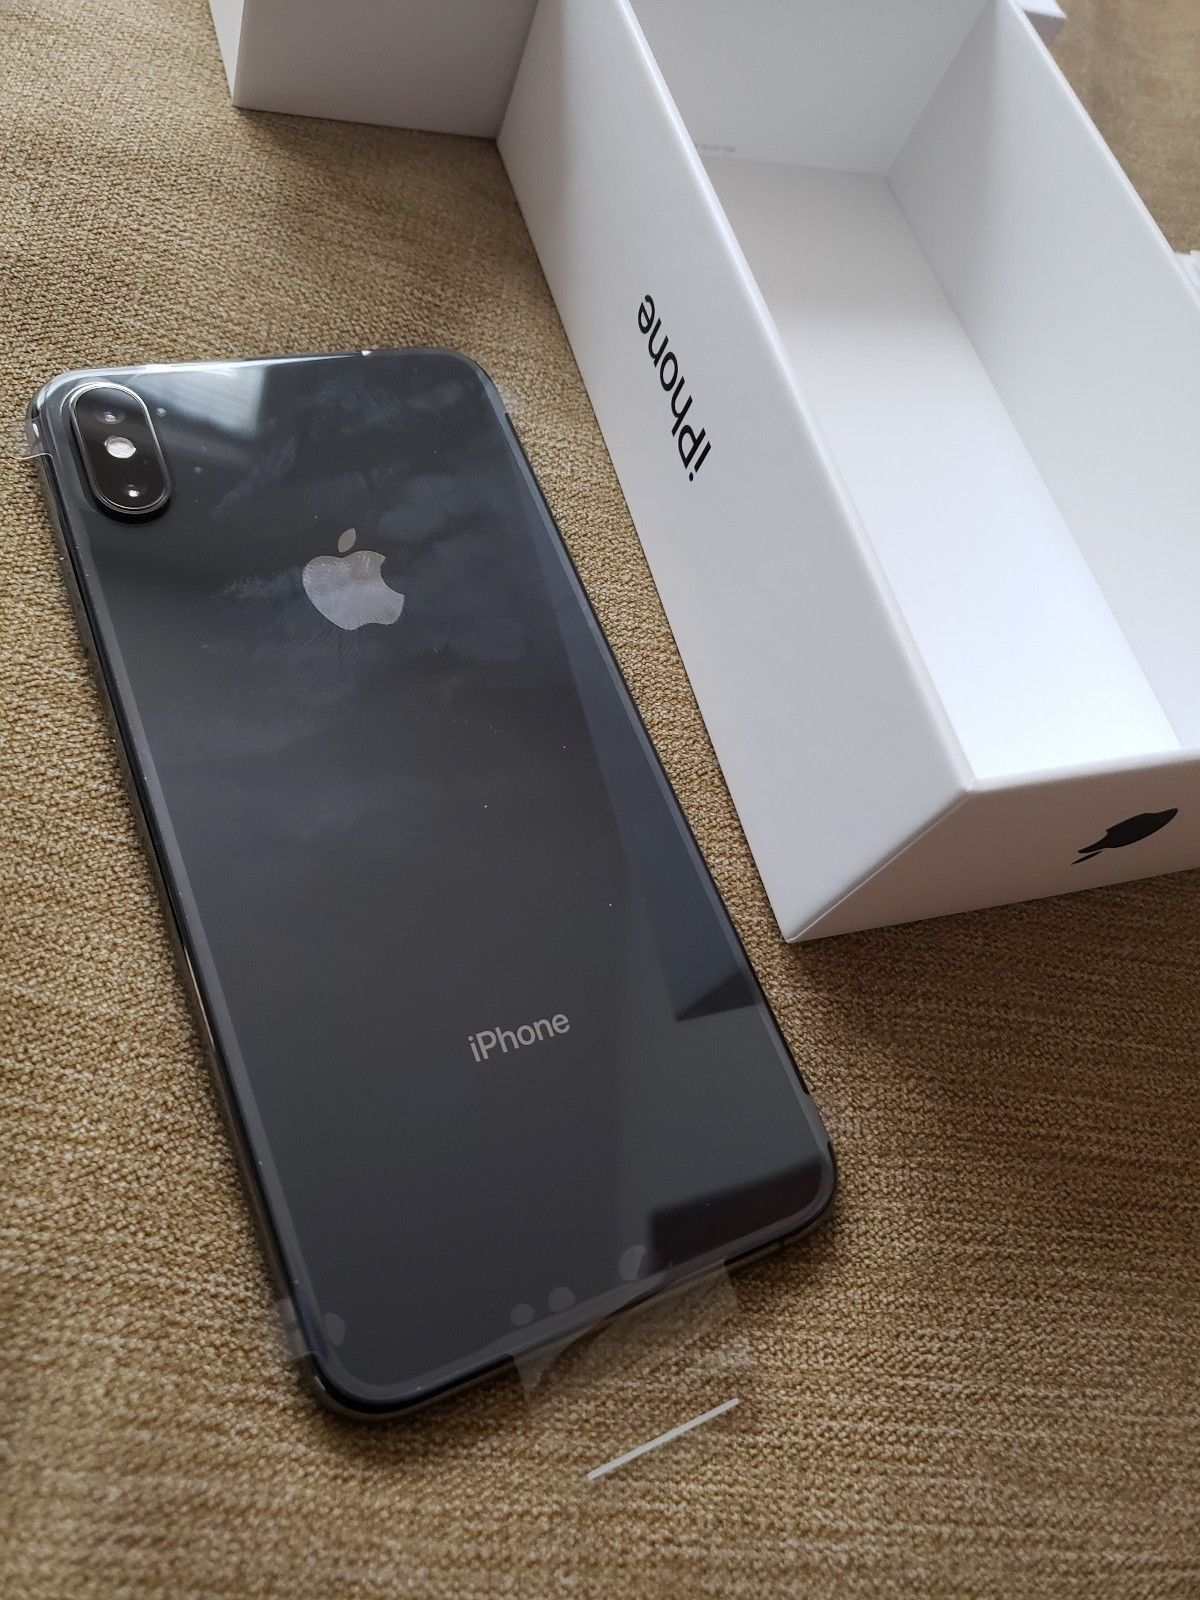 Apple Iphone Xs Max 64gb Space Gray Unlocked By Sim A1921 Cdma Gsm 1000 0 Iphone Xs Max Space Grey Iphone Ipad Wifi Iphone Phone Cases